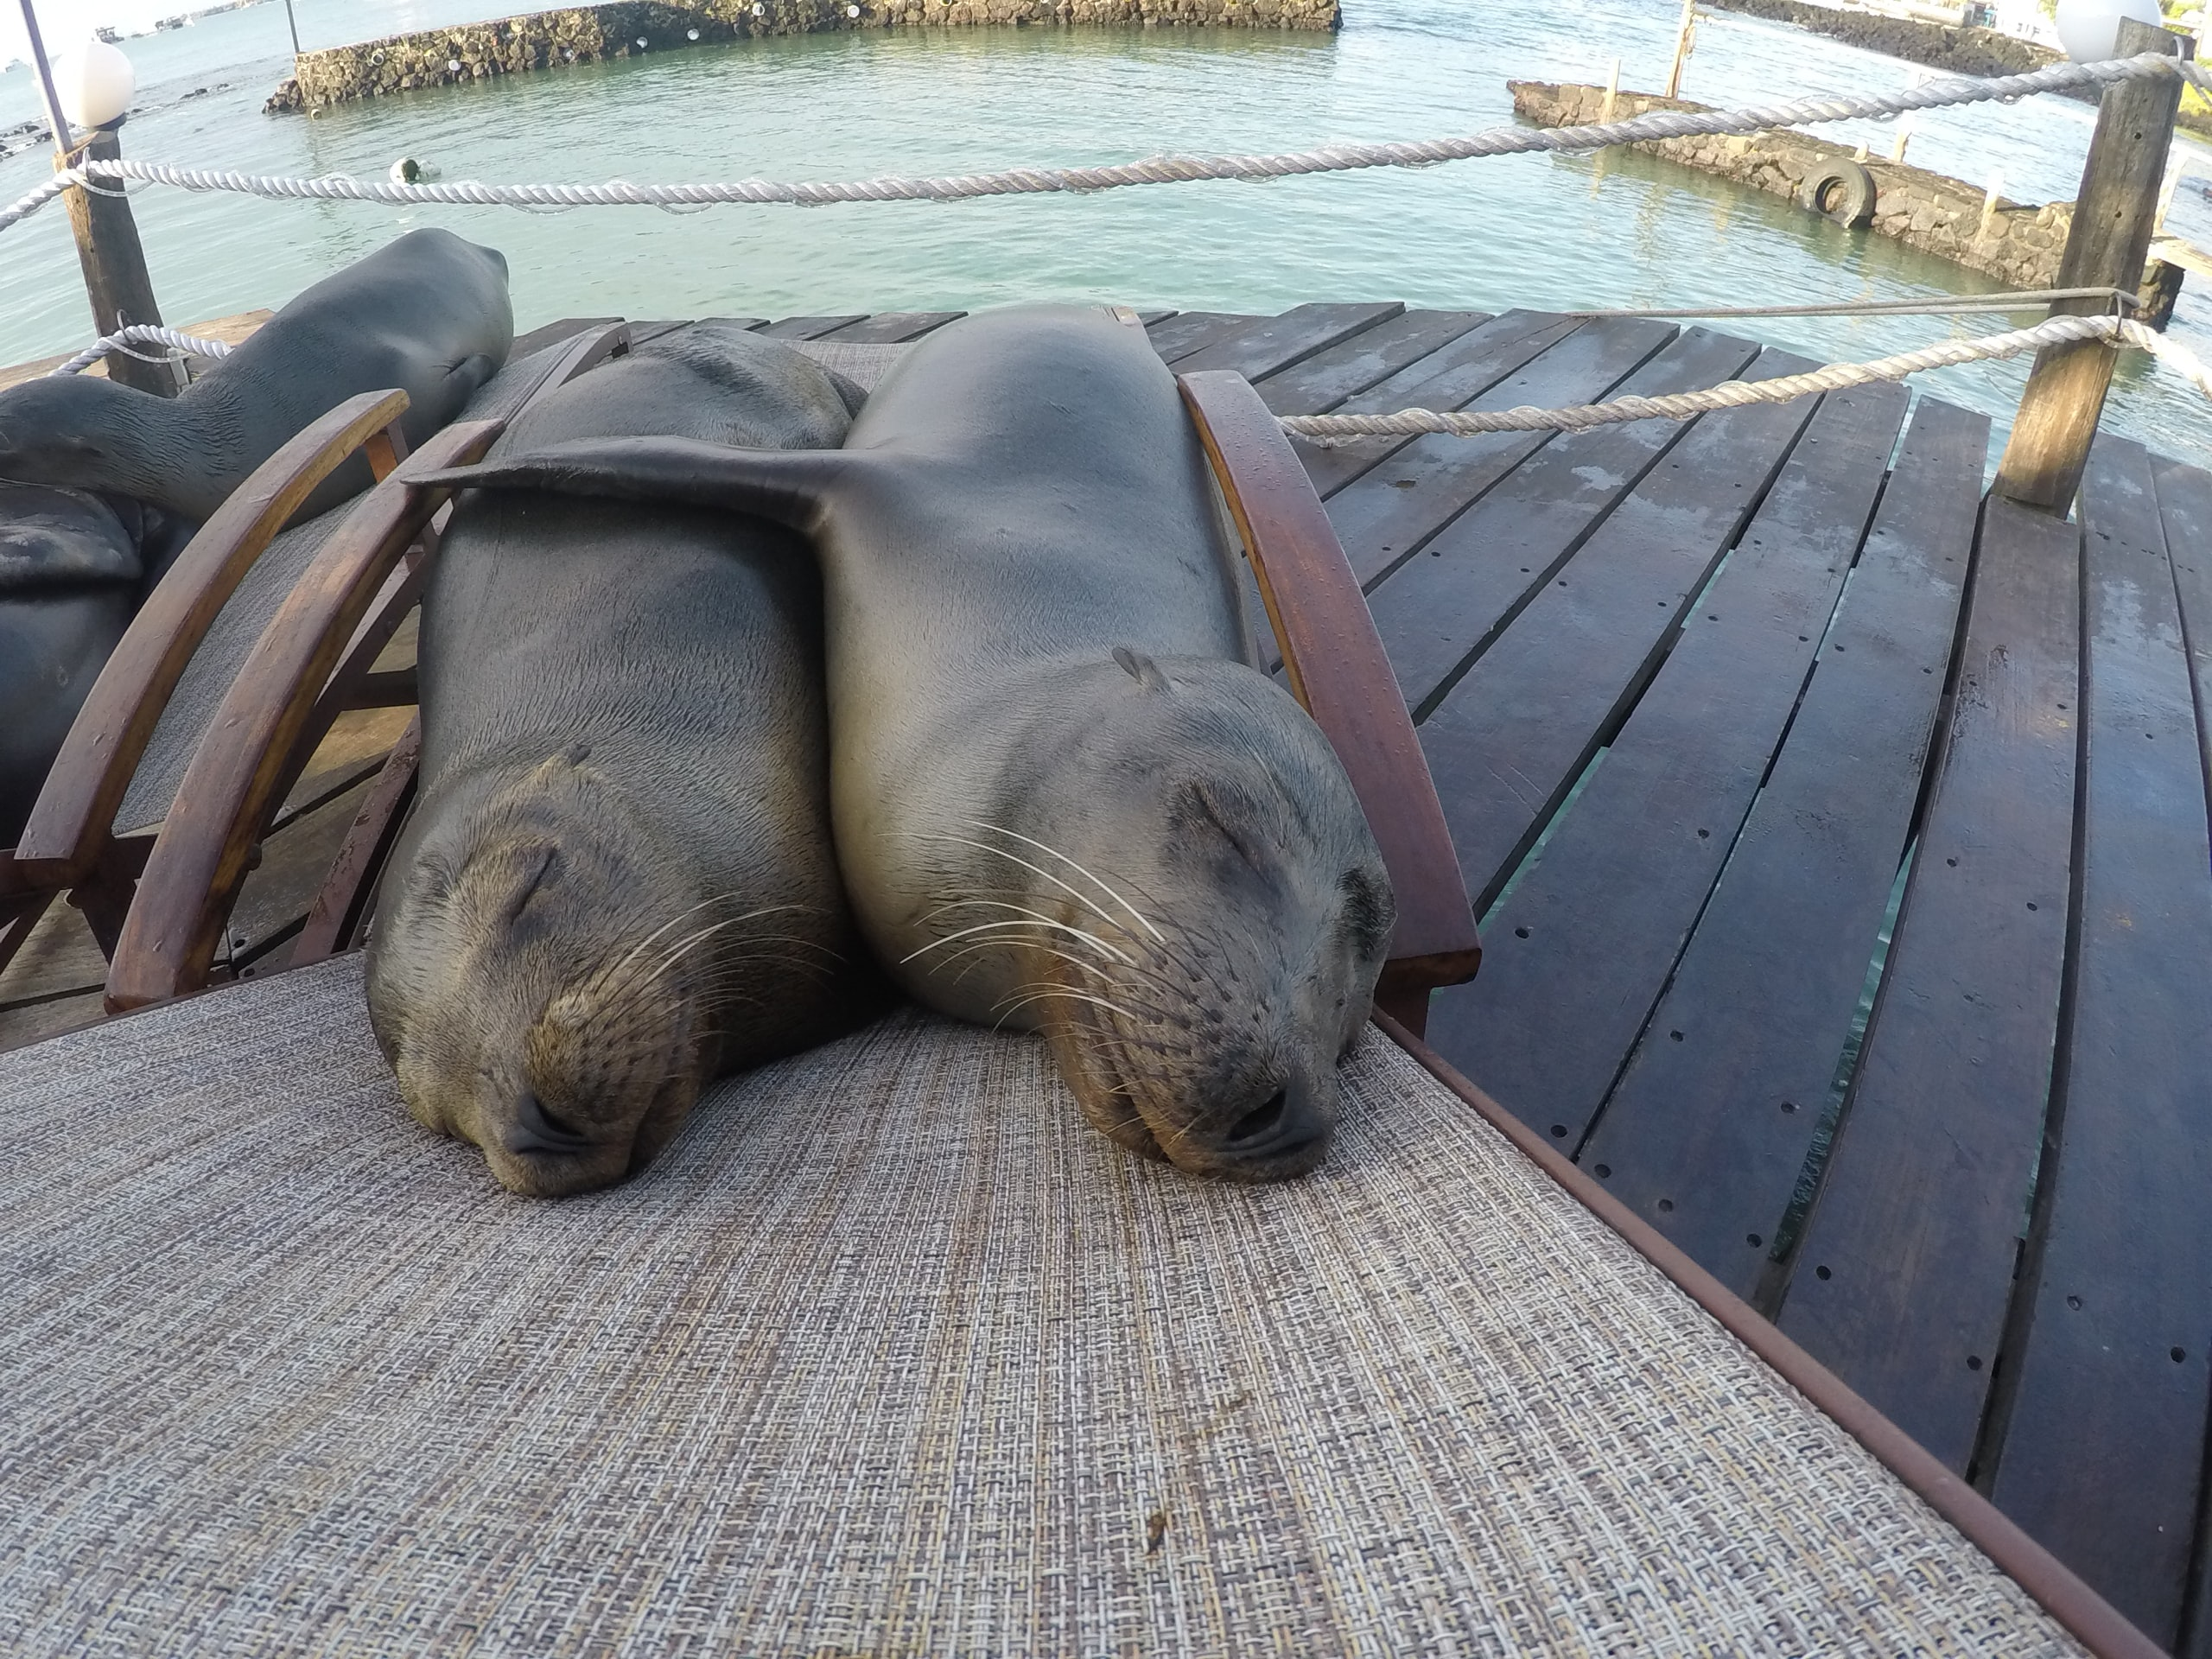 Two sea lions cuddling up to each other while sleeping in a deck chair